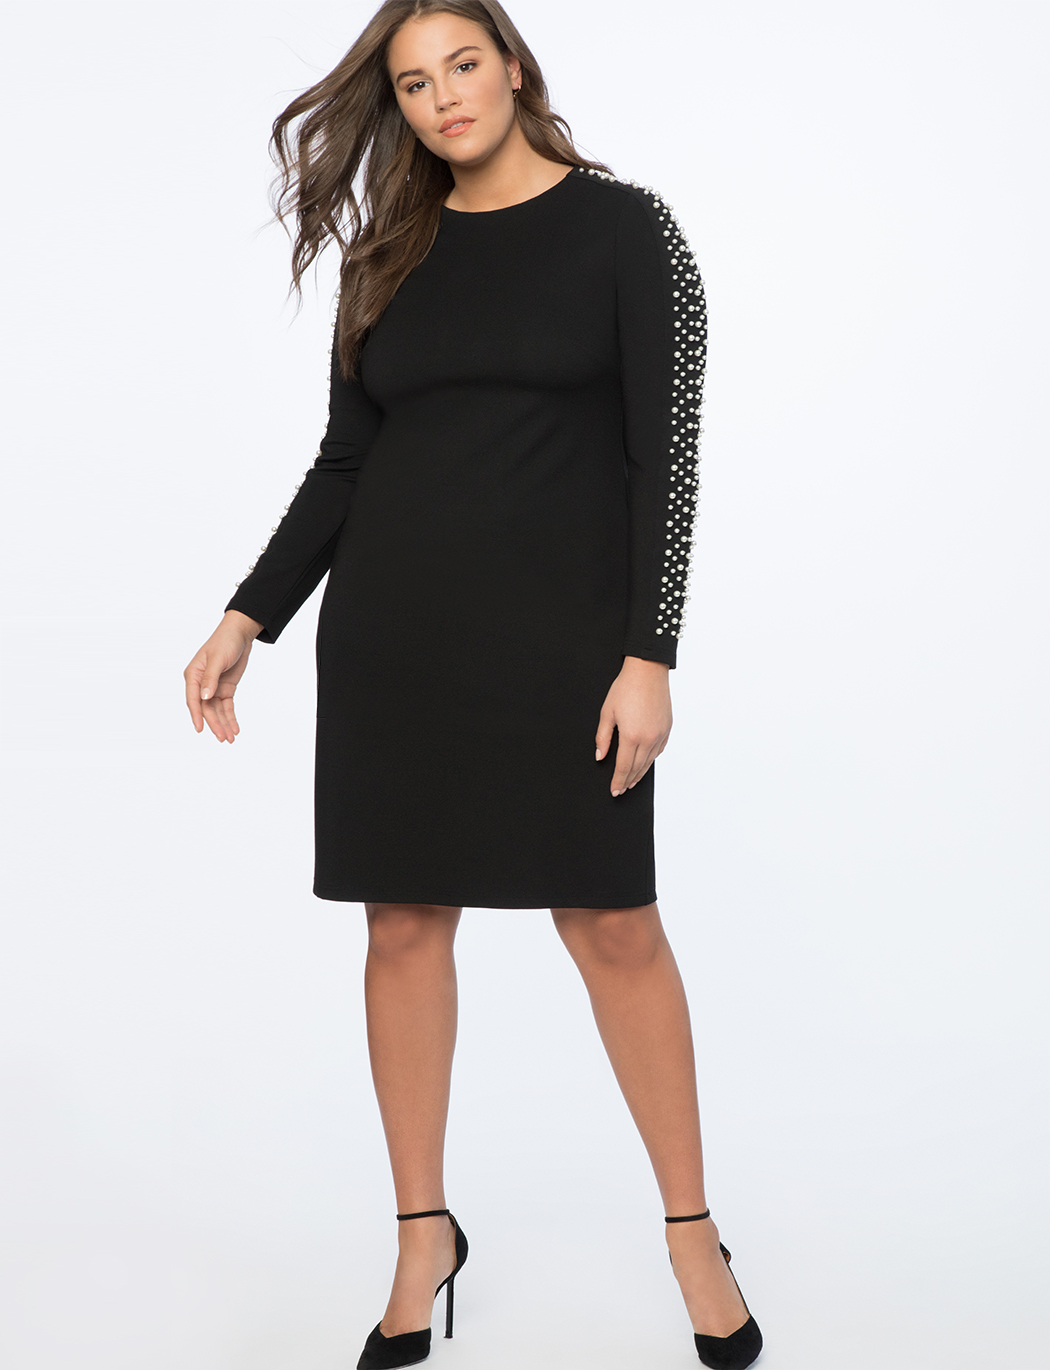 Embellished Sleeve Dress